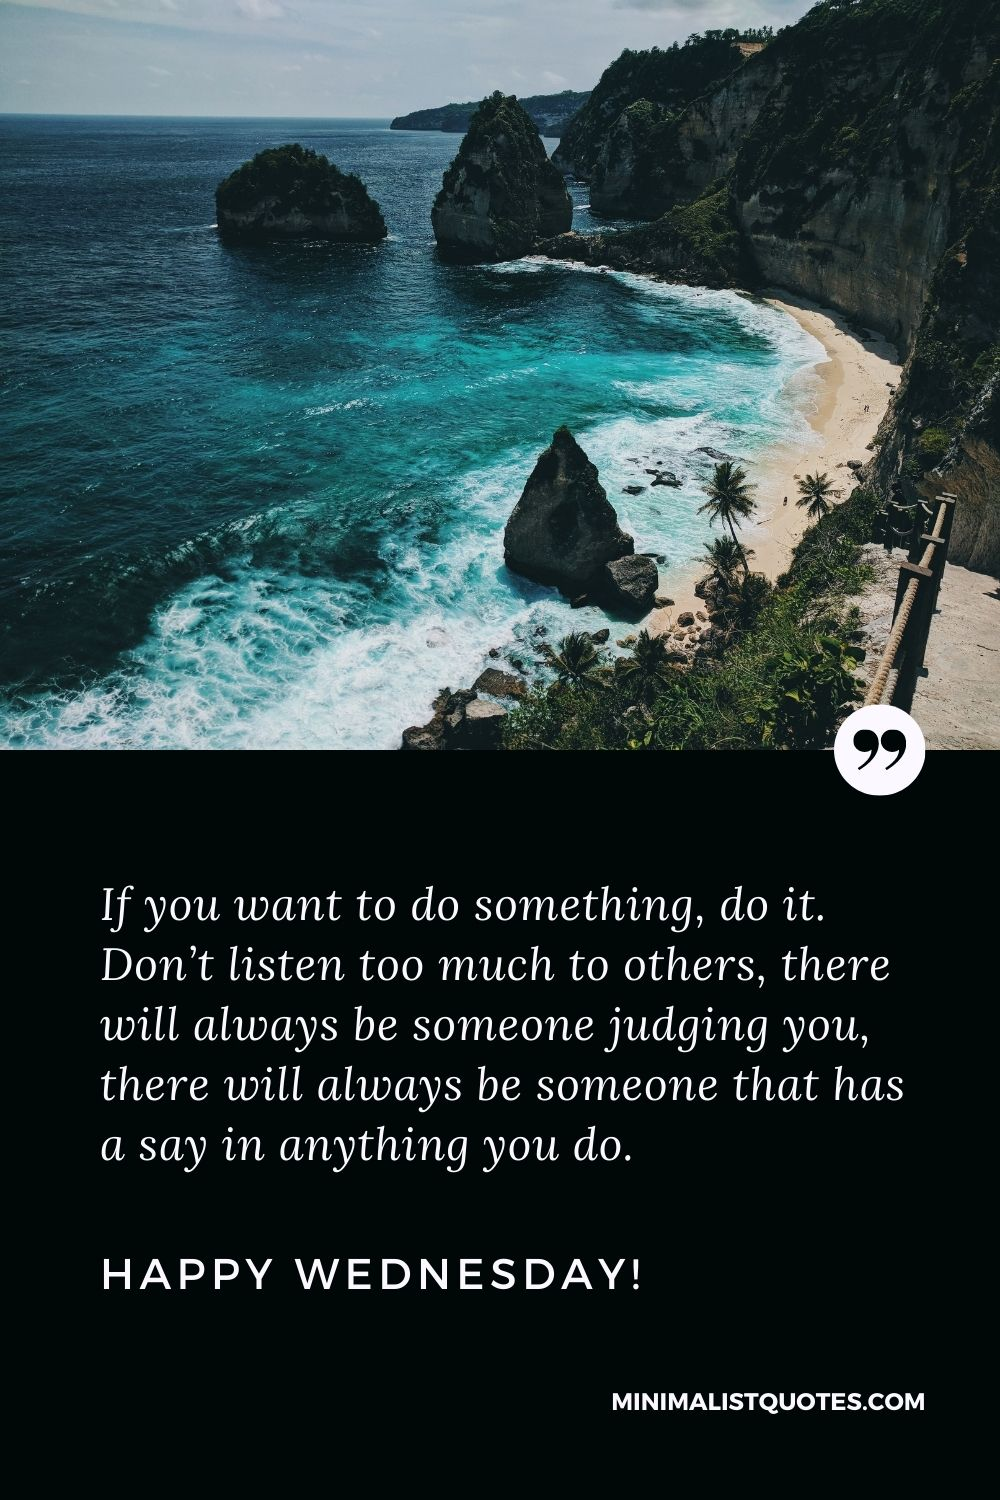 Wednesday Quote, Wish & Message With Image: If you want to do something, do it. Don't listen too much to others, there will always be someone judging you, there will always be someone that has a say in anything you do. Happy Wednesday!